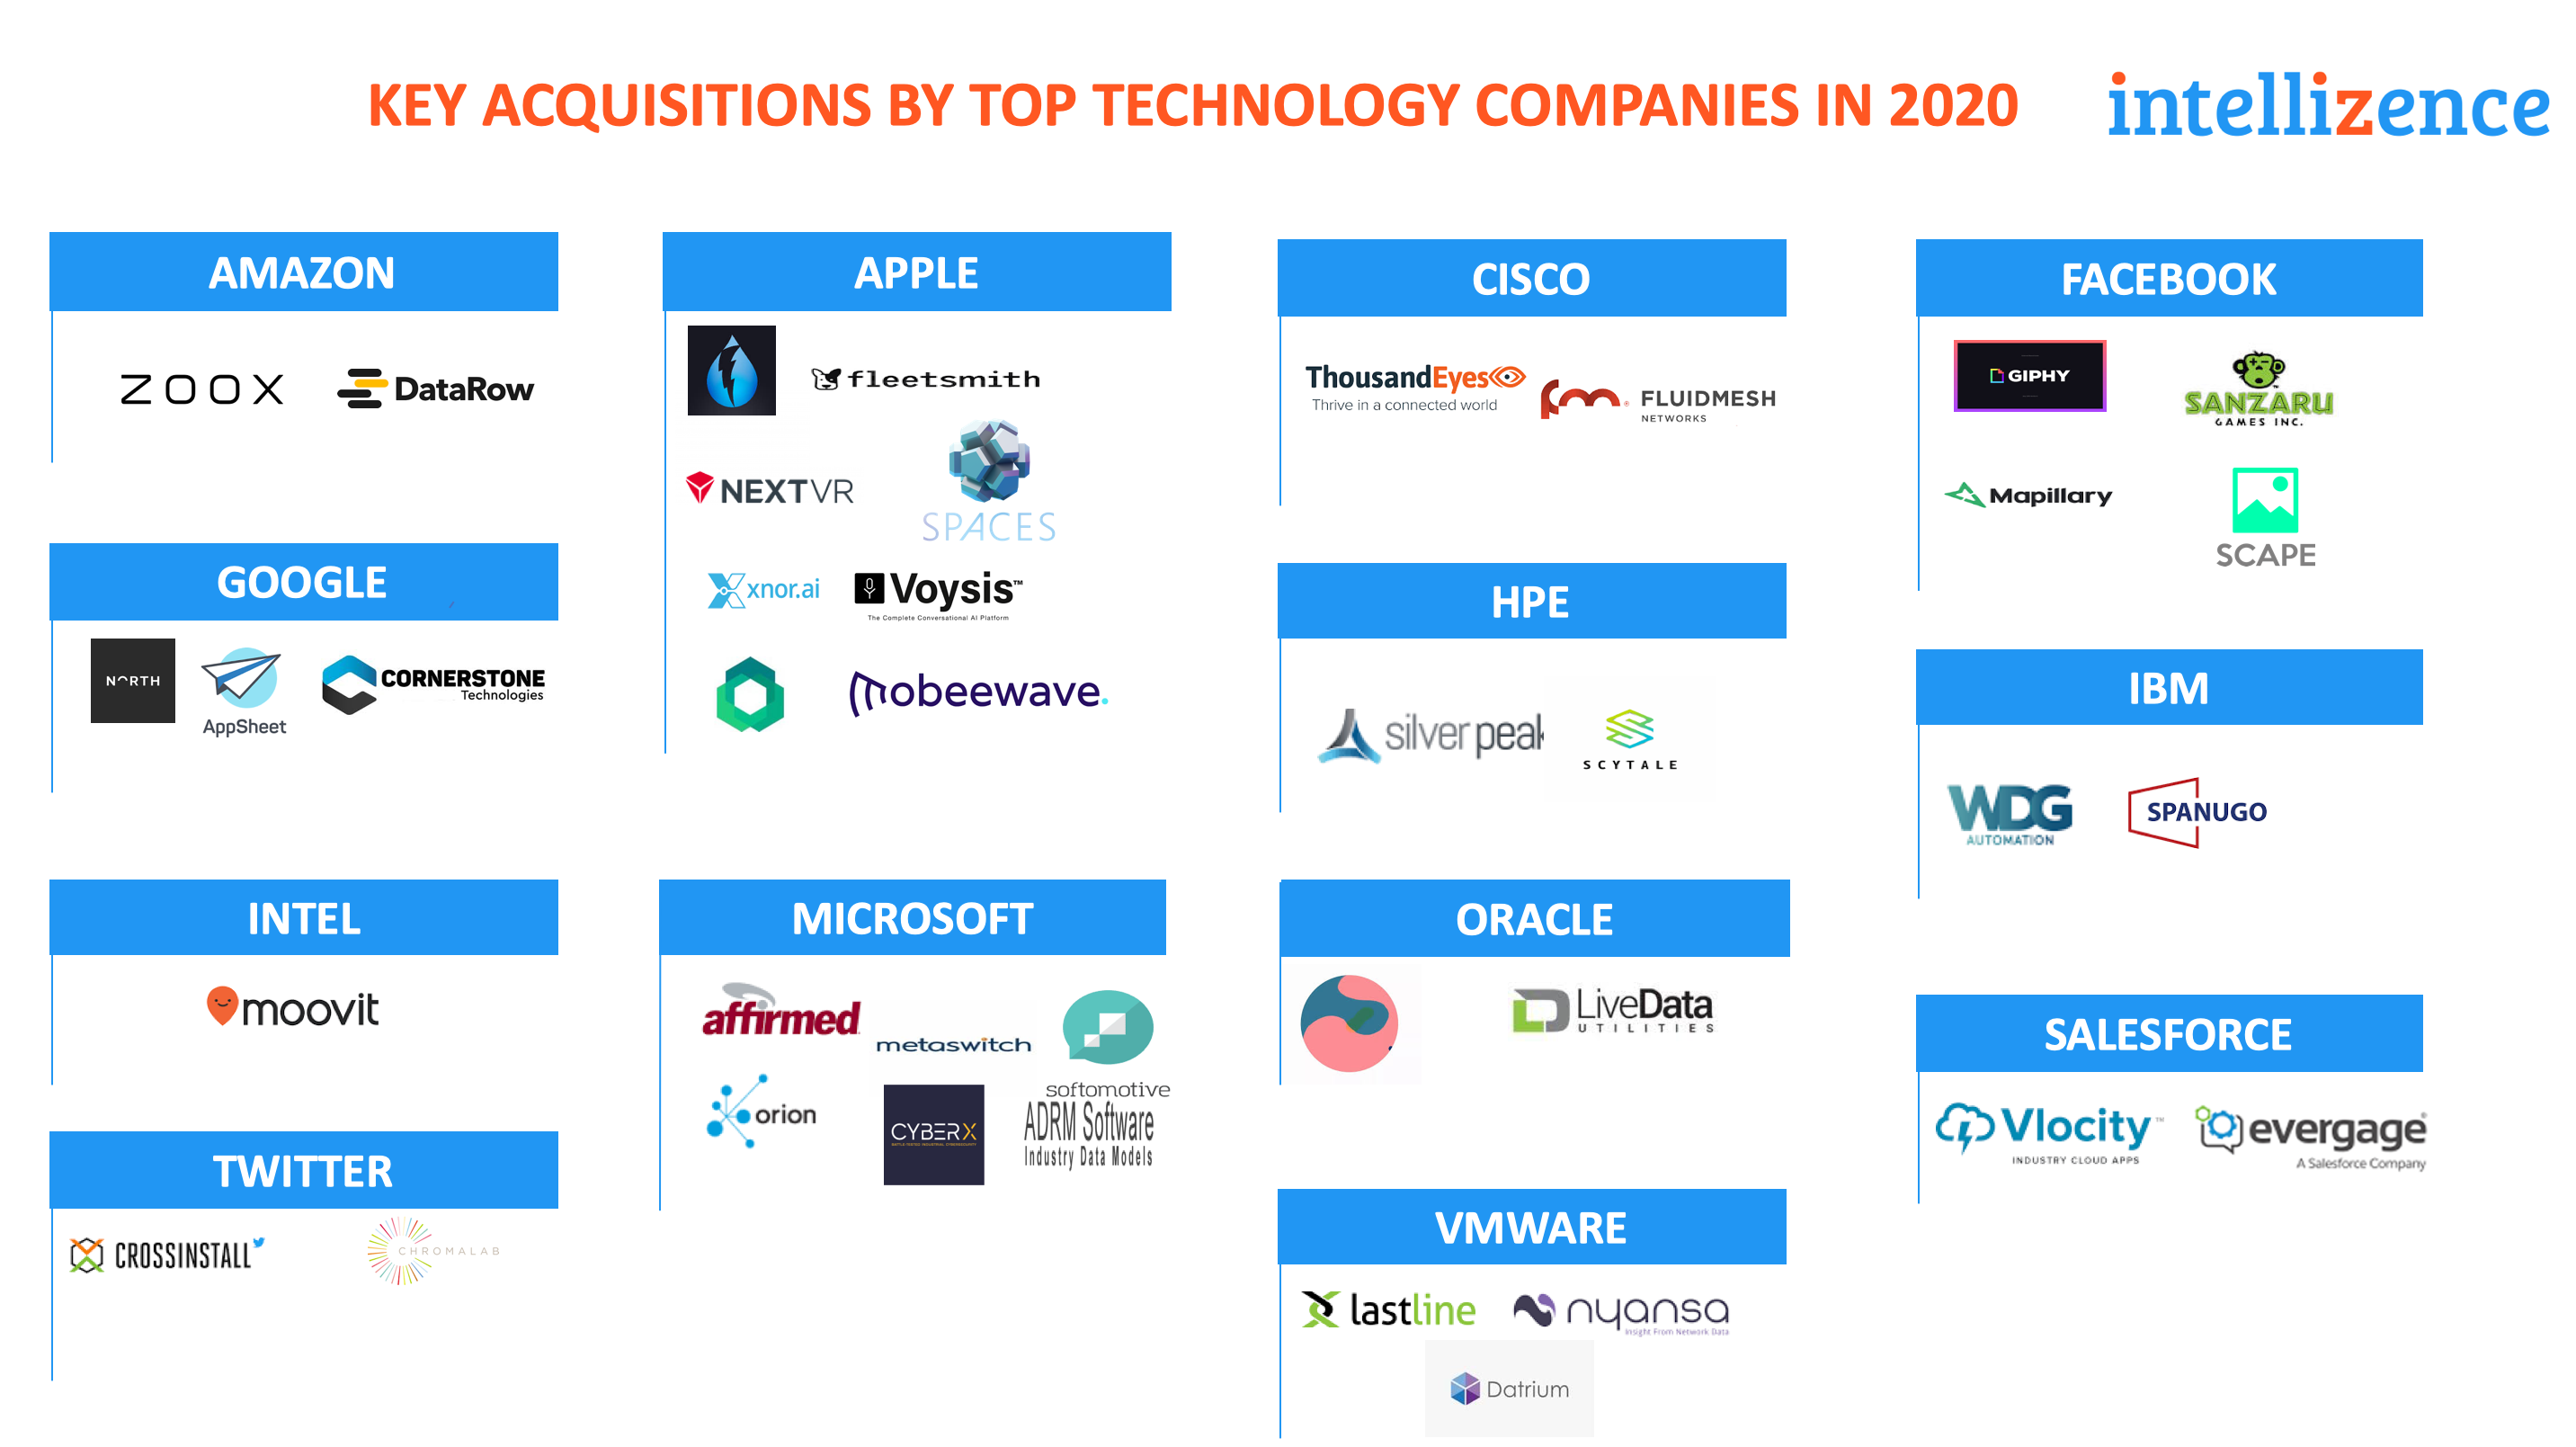 Acquisitions by Top Technology Companies in 2020